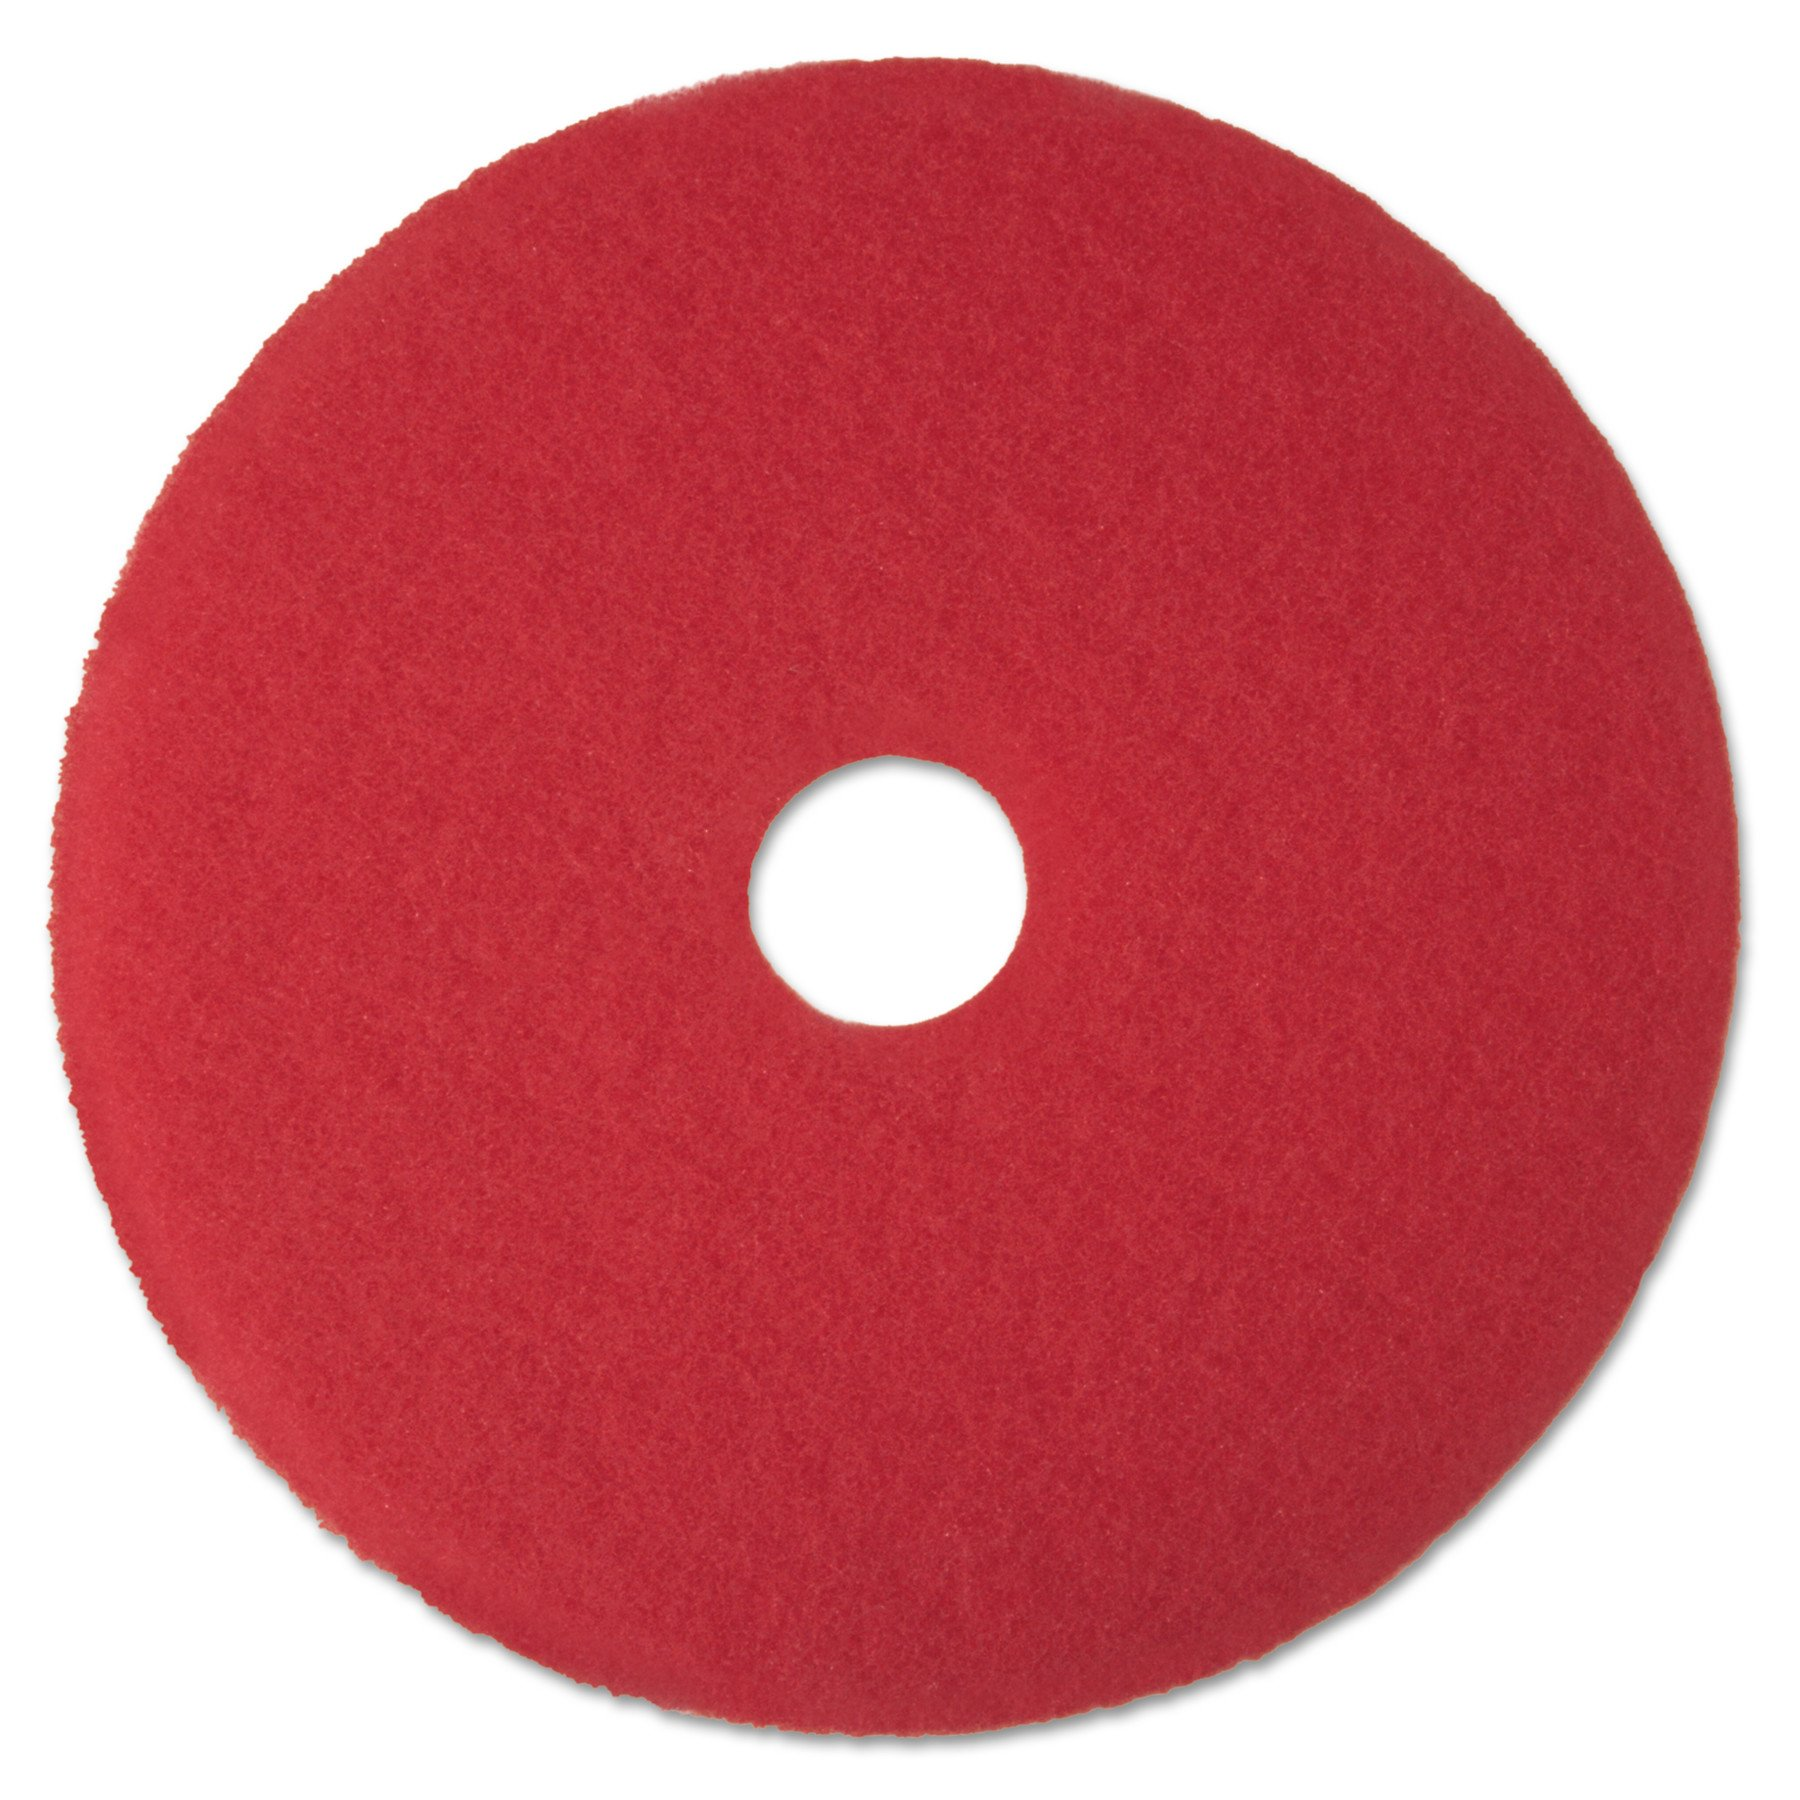 3M 08390 Low-Speed Buffer Floor Pads 5100, 15'' Diameter, Red (Case of 5) by 3M